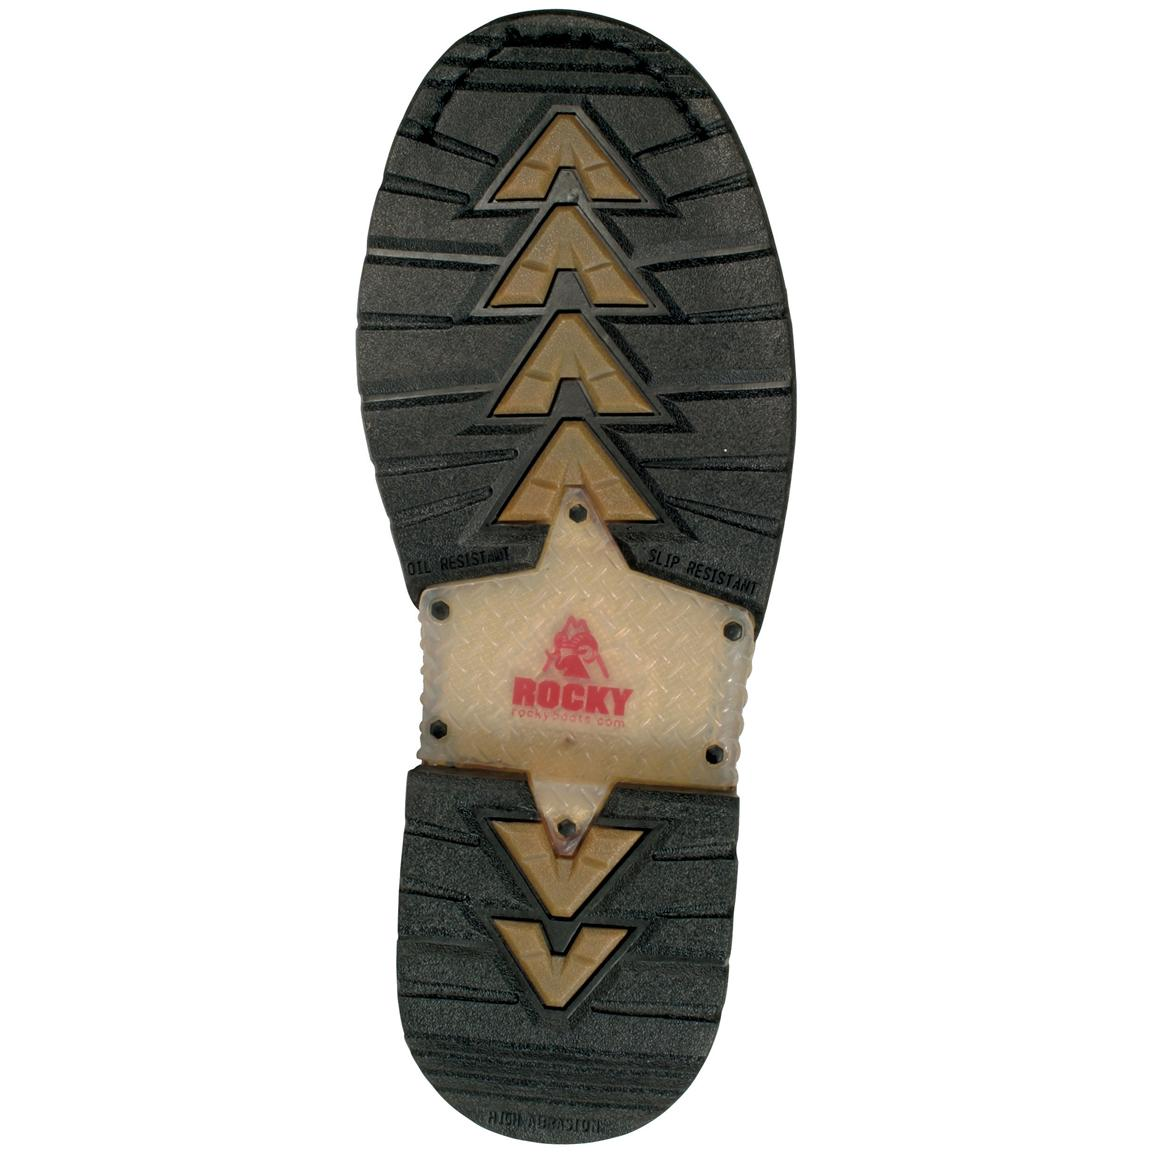 7-layer slip and oil-resistant rubber outsole